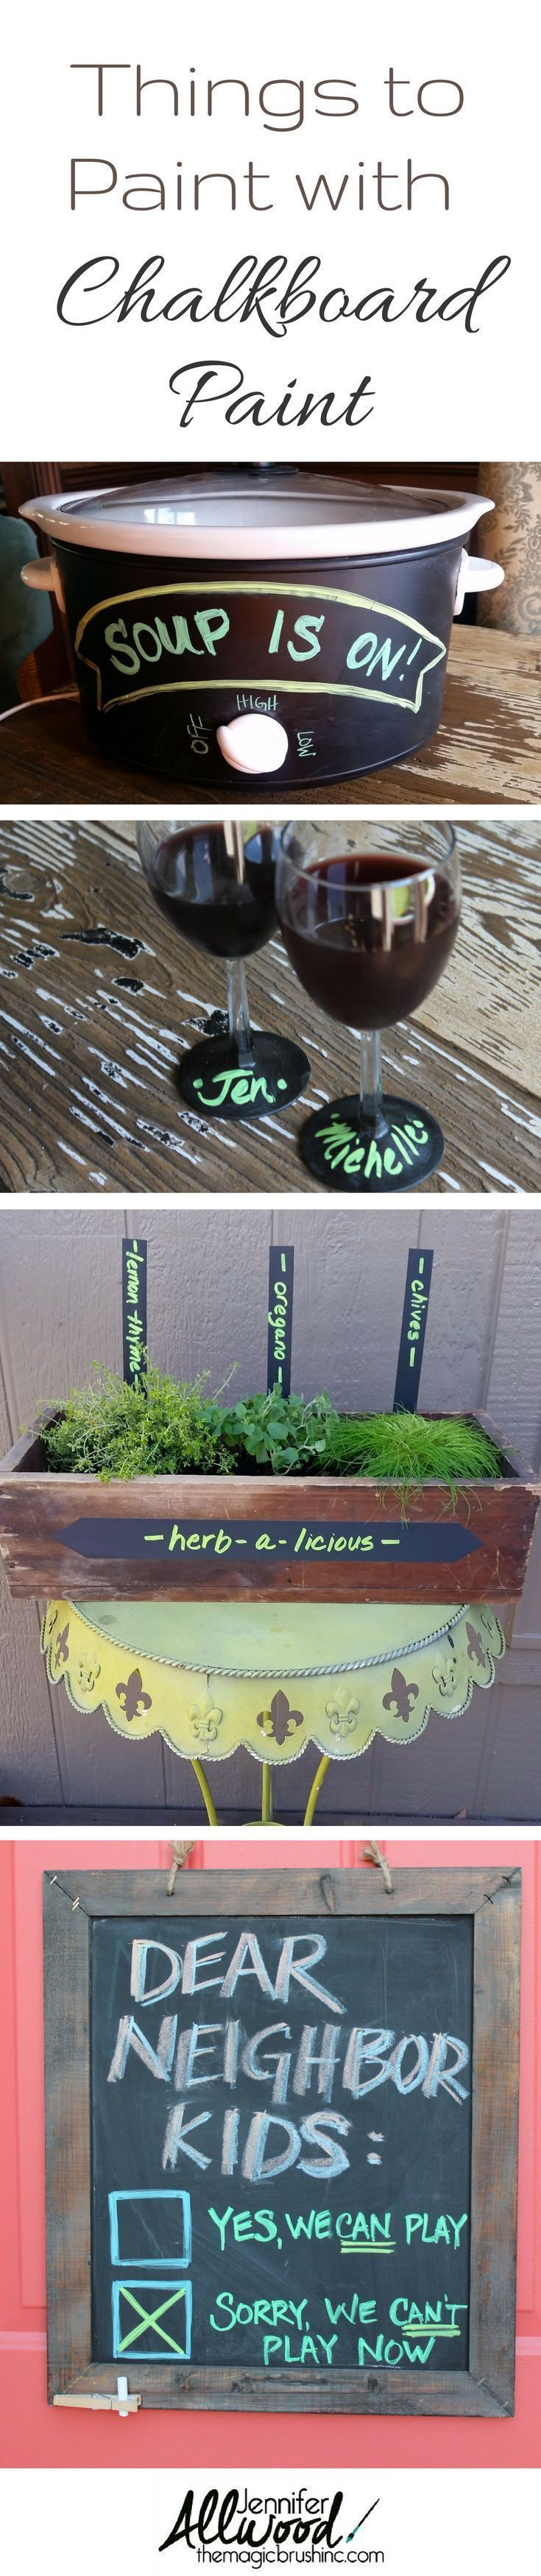 Things to paint with chalkboard paint. Make creative personlized gifts and home decor with chalkboard paint. How to paint with chalkboard paint and chalkboard paint ideas including painted wine glasses, herb gardens, crockpots and chalkboard signs by themagicbrushinc.com #painting #diy #diyhomedecor #homedecor #chalkboard #paint #howto